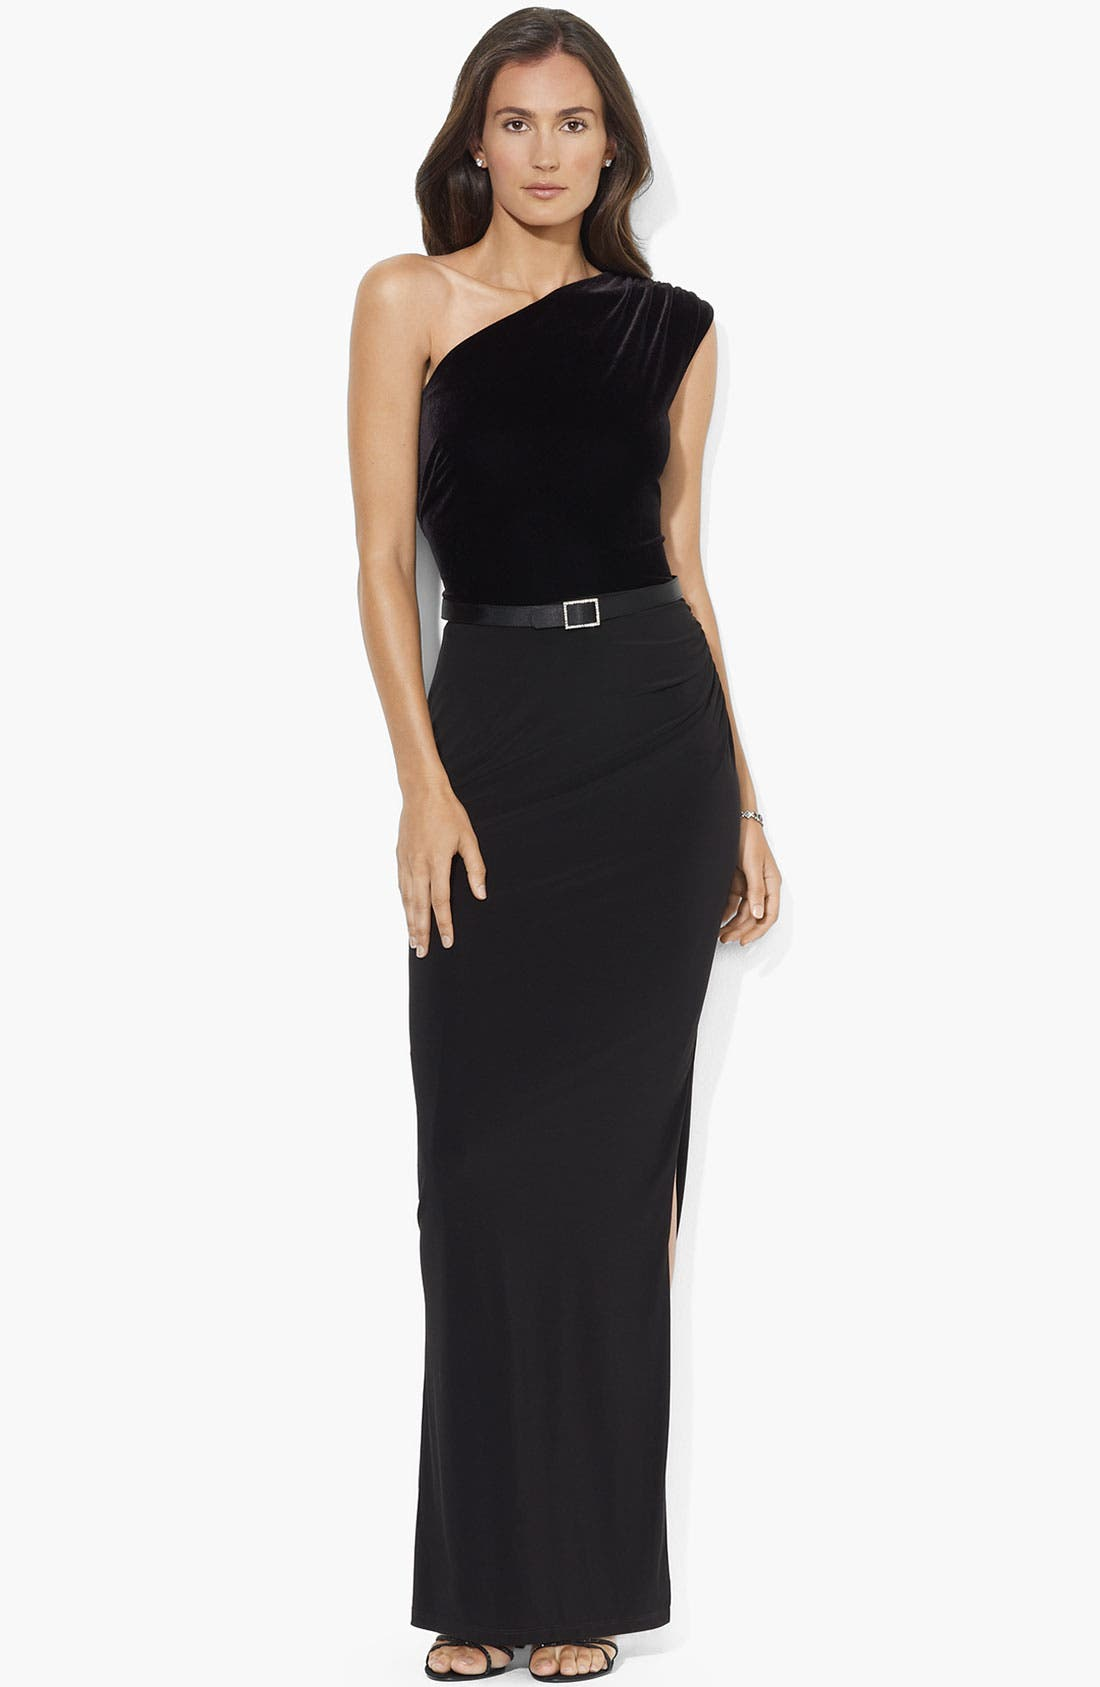 Alternate Image 1 Selected - Lauren Ralph Lauren One Shoulder Velvet Gown (Petite)